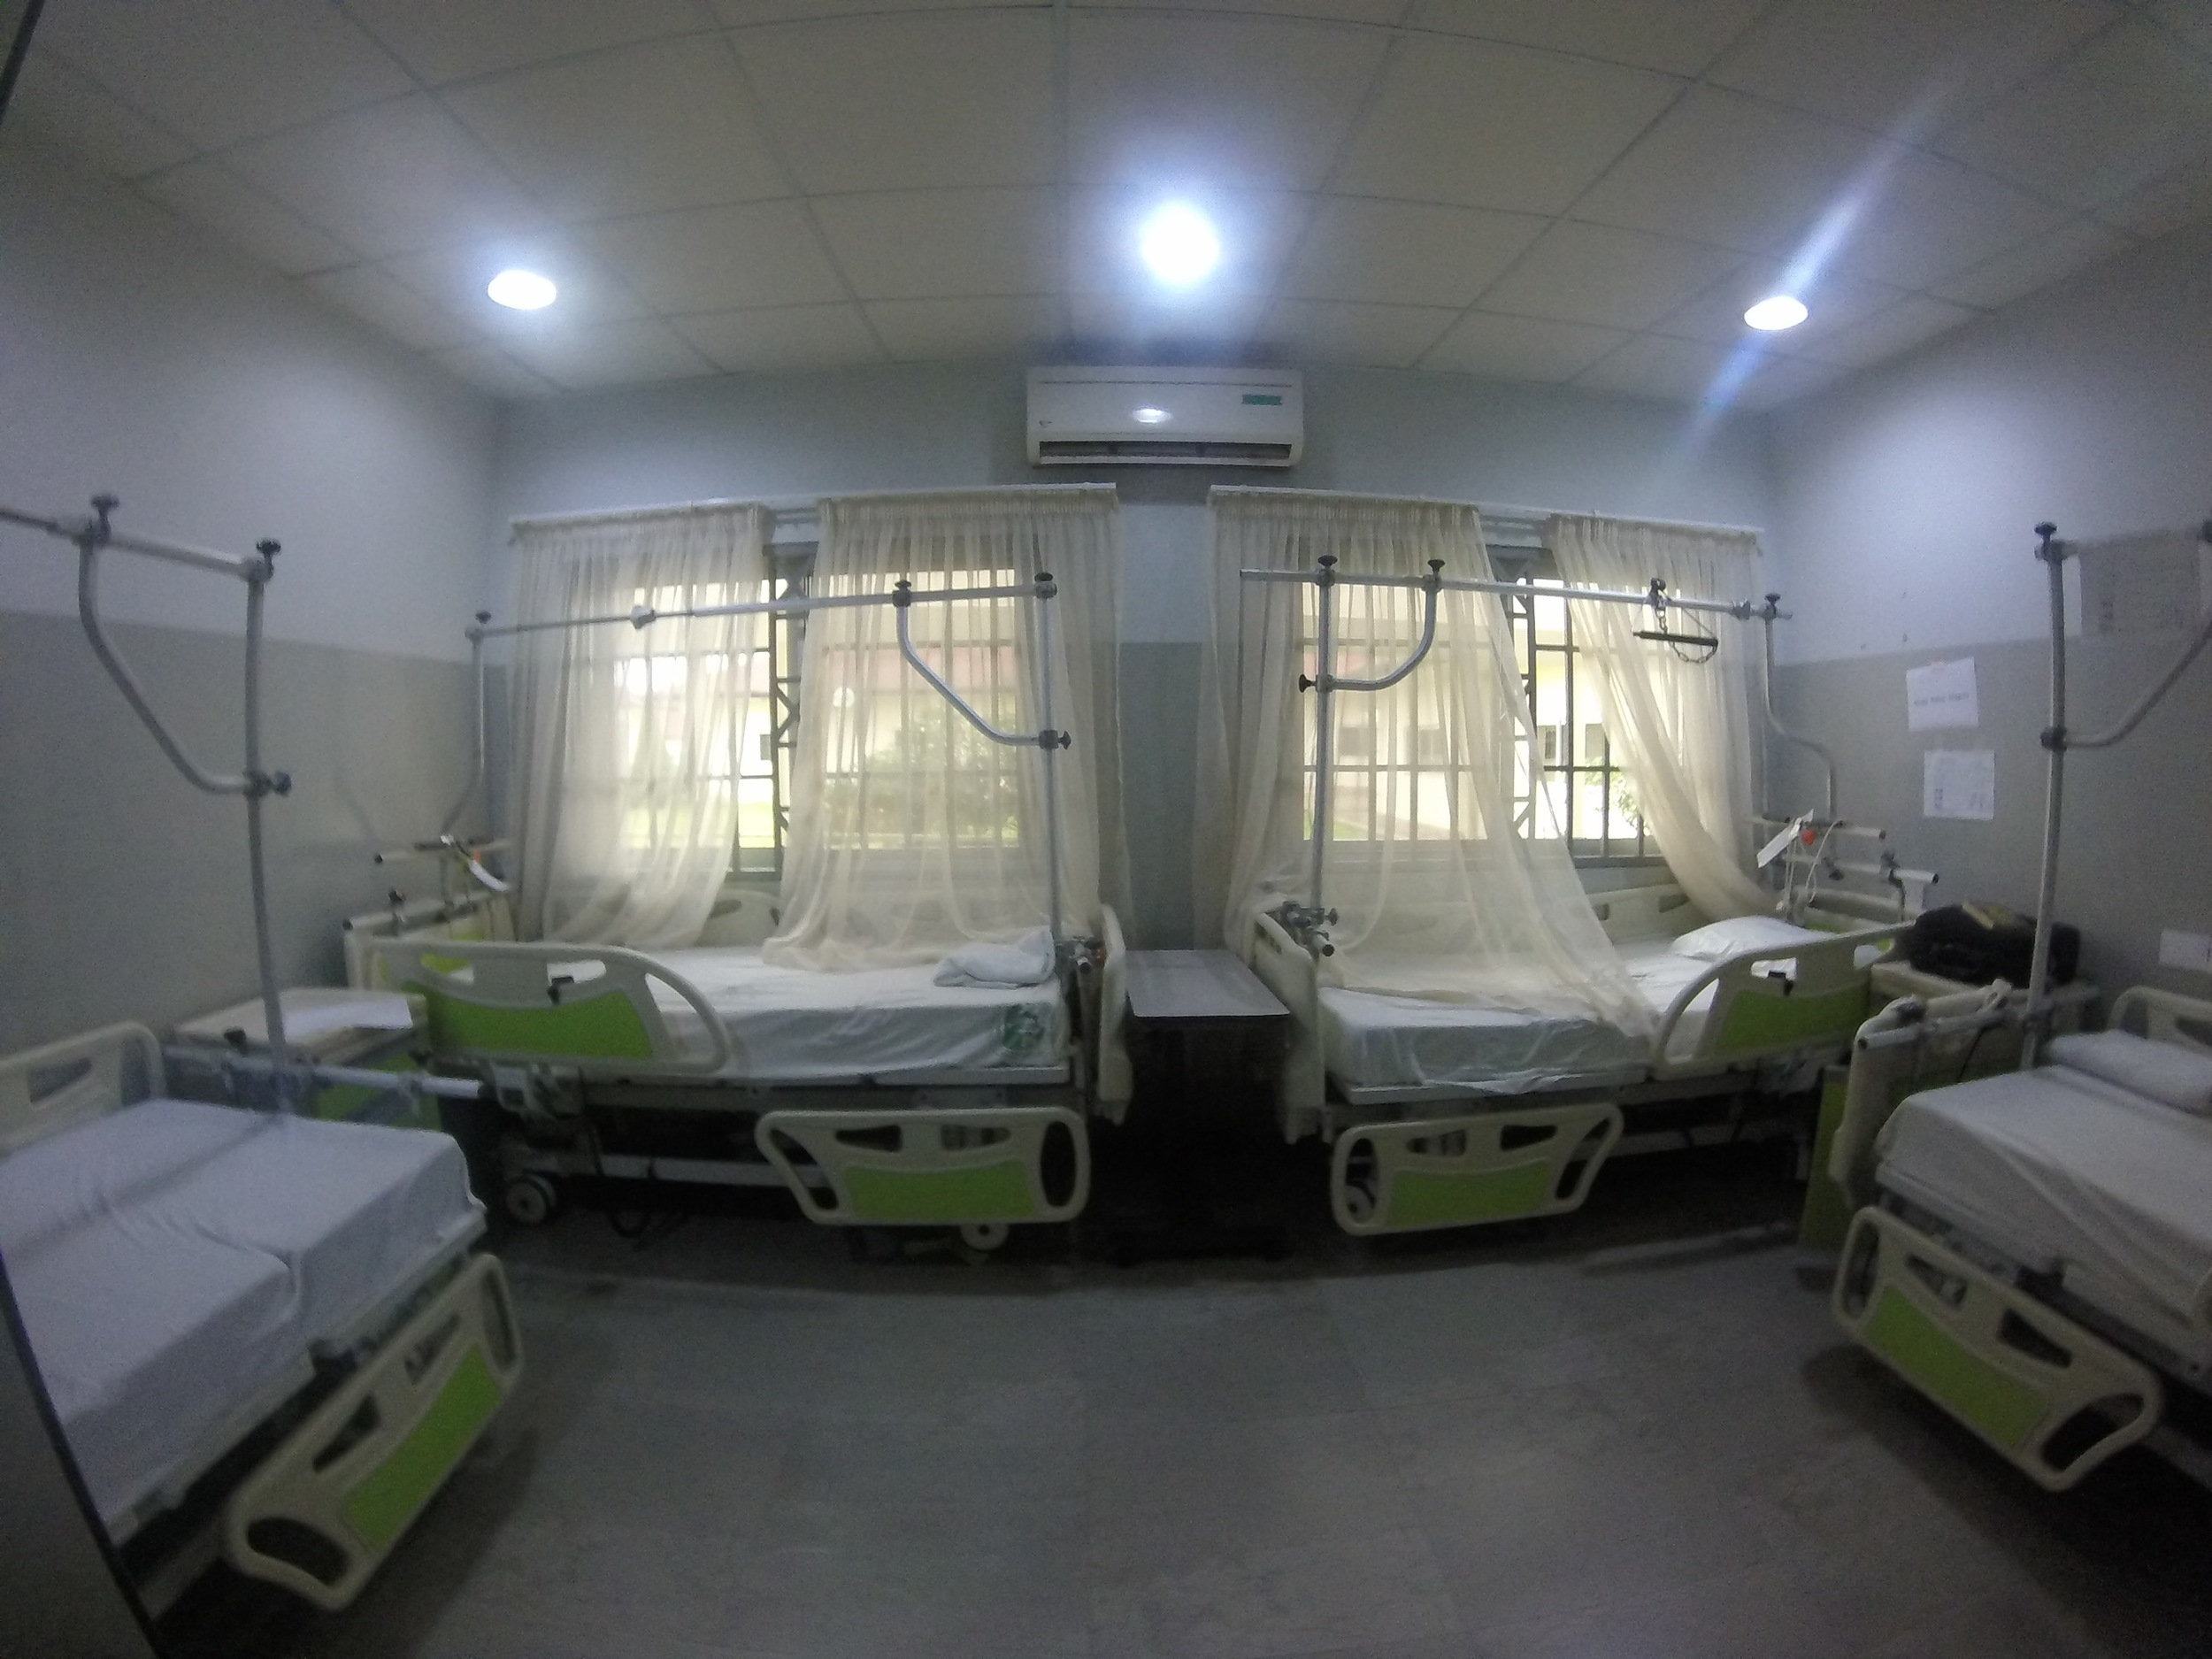 One of the wards for pre-op, post-op, and extended stay patients